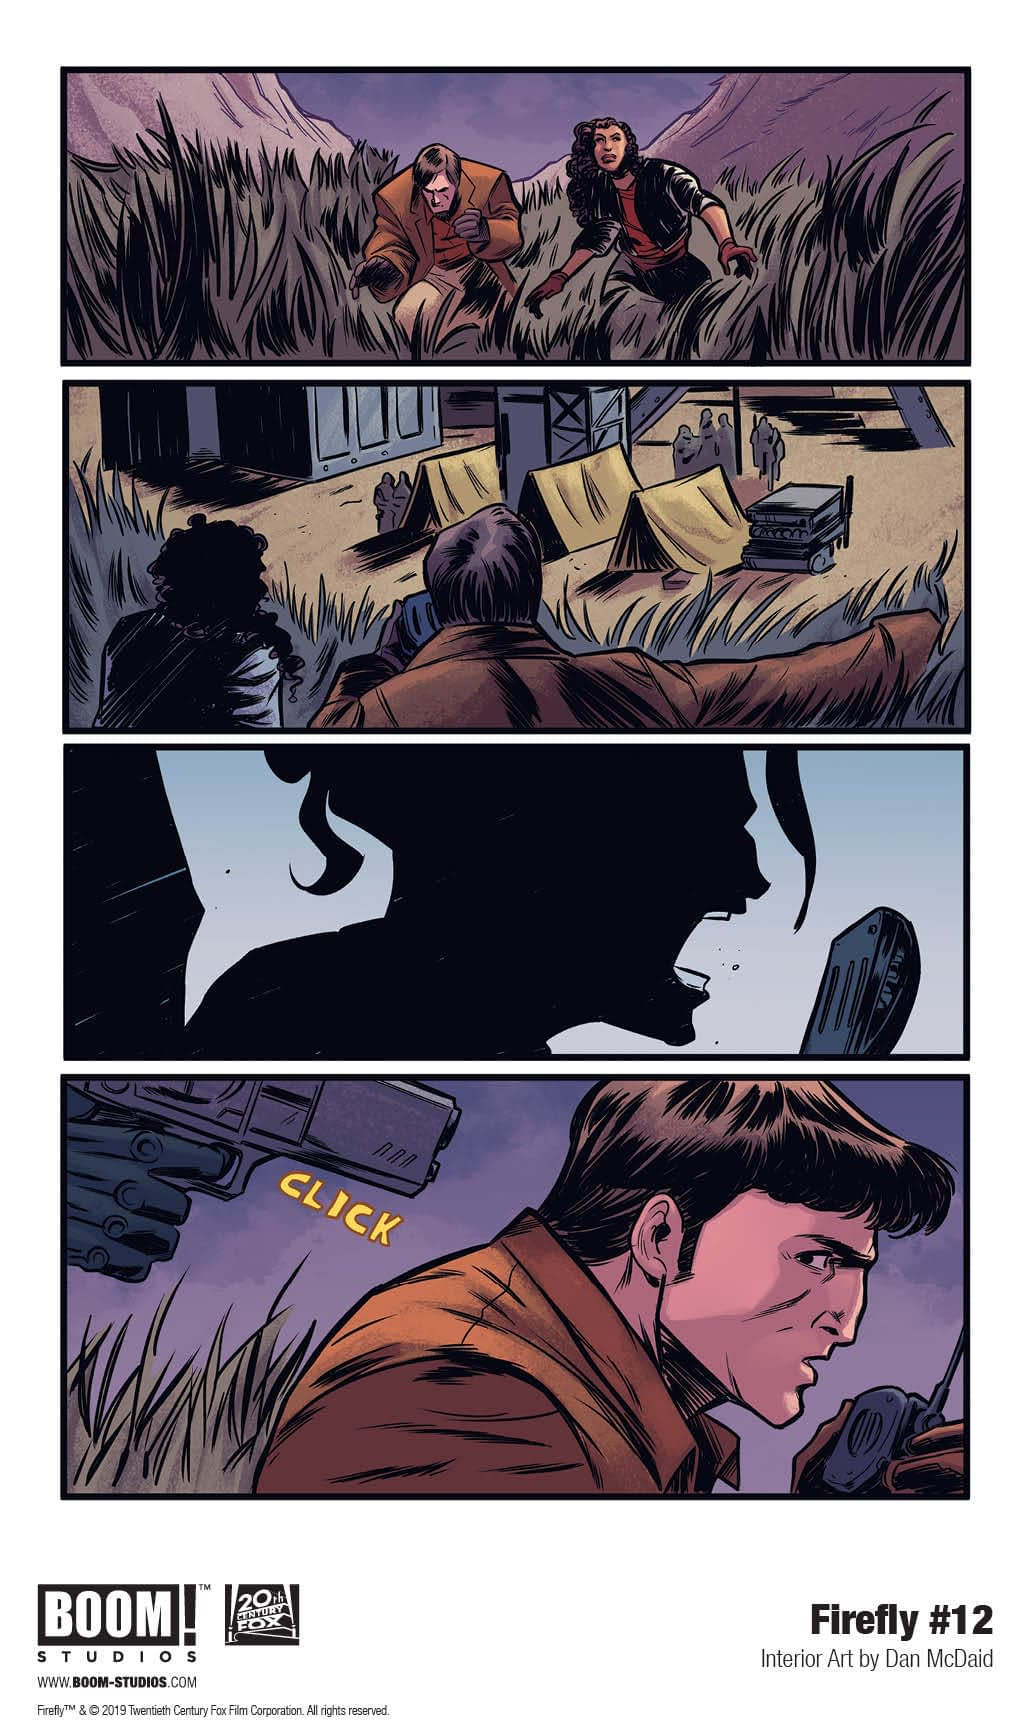 3 Pages from December's Firefly #12